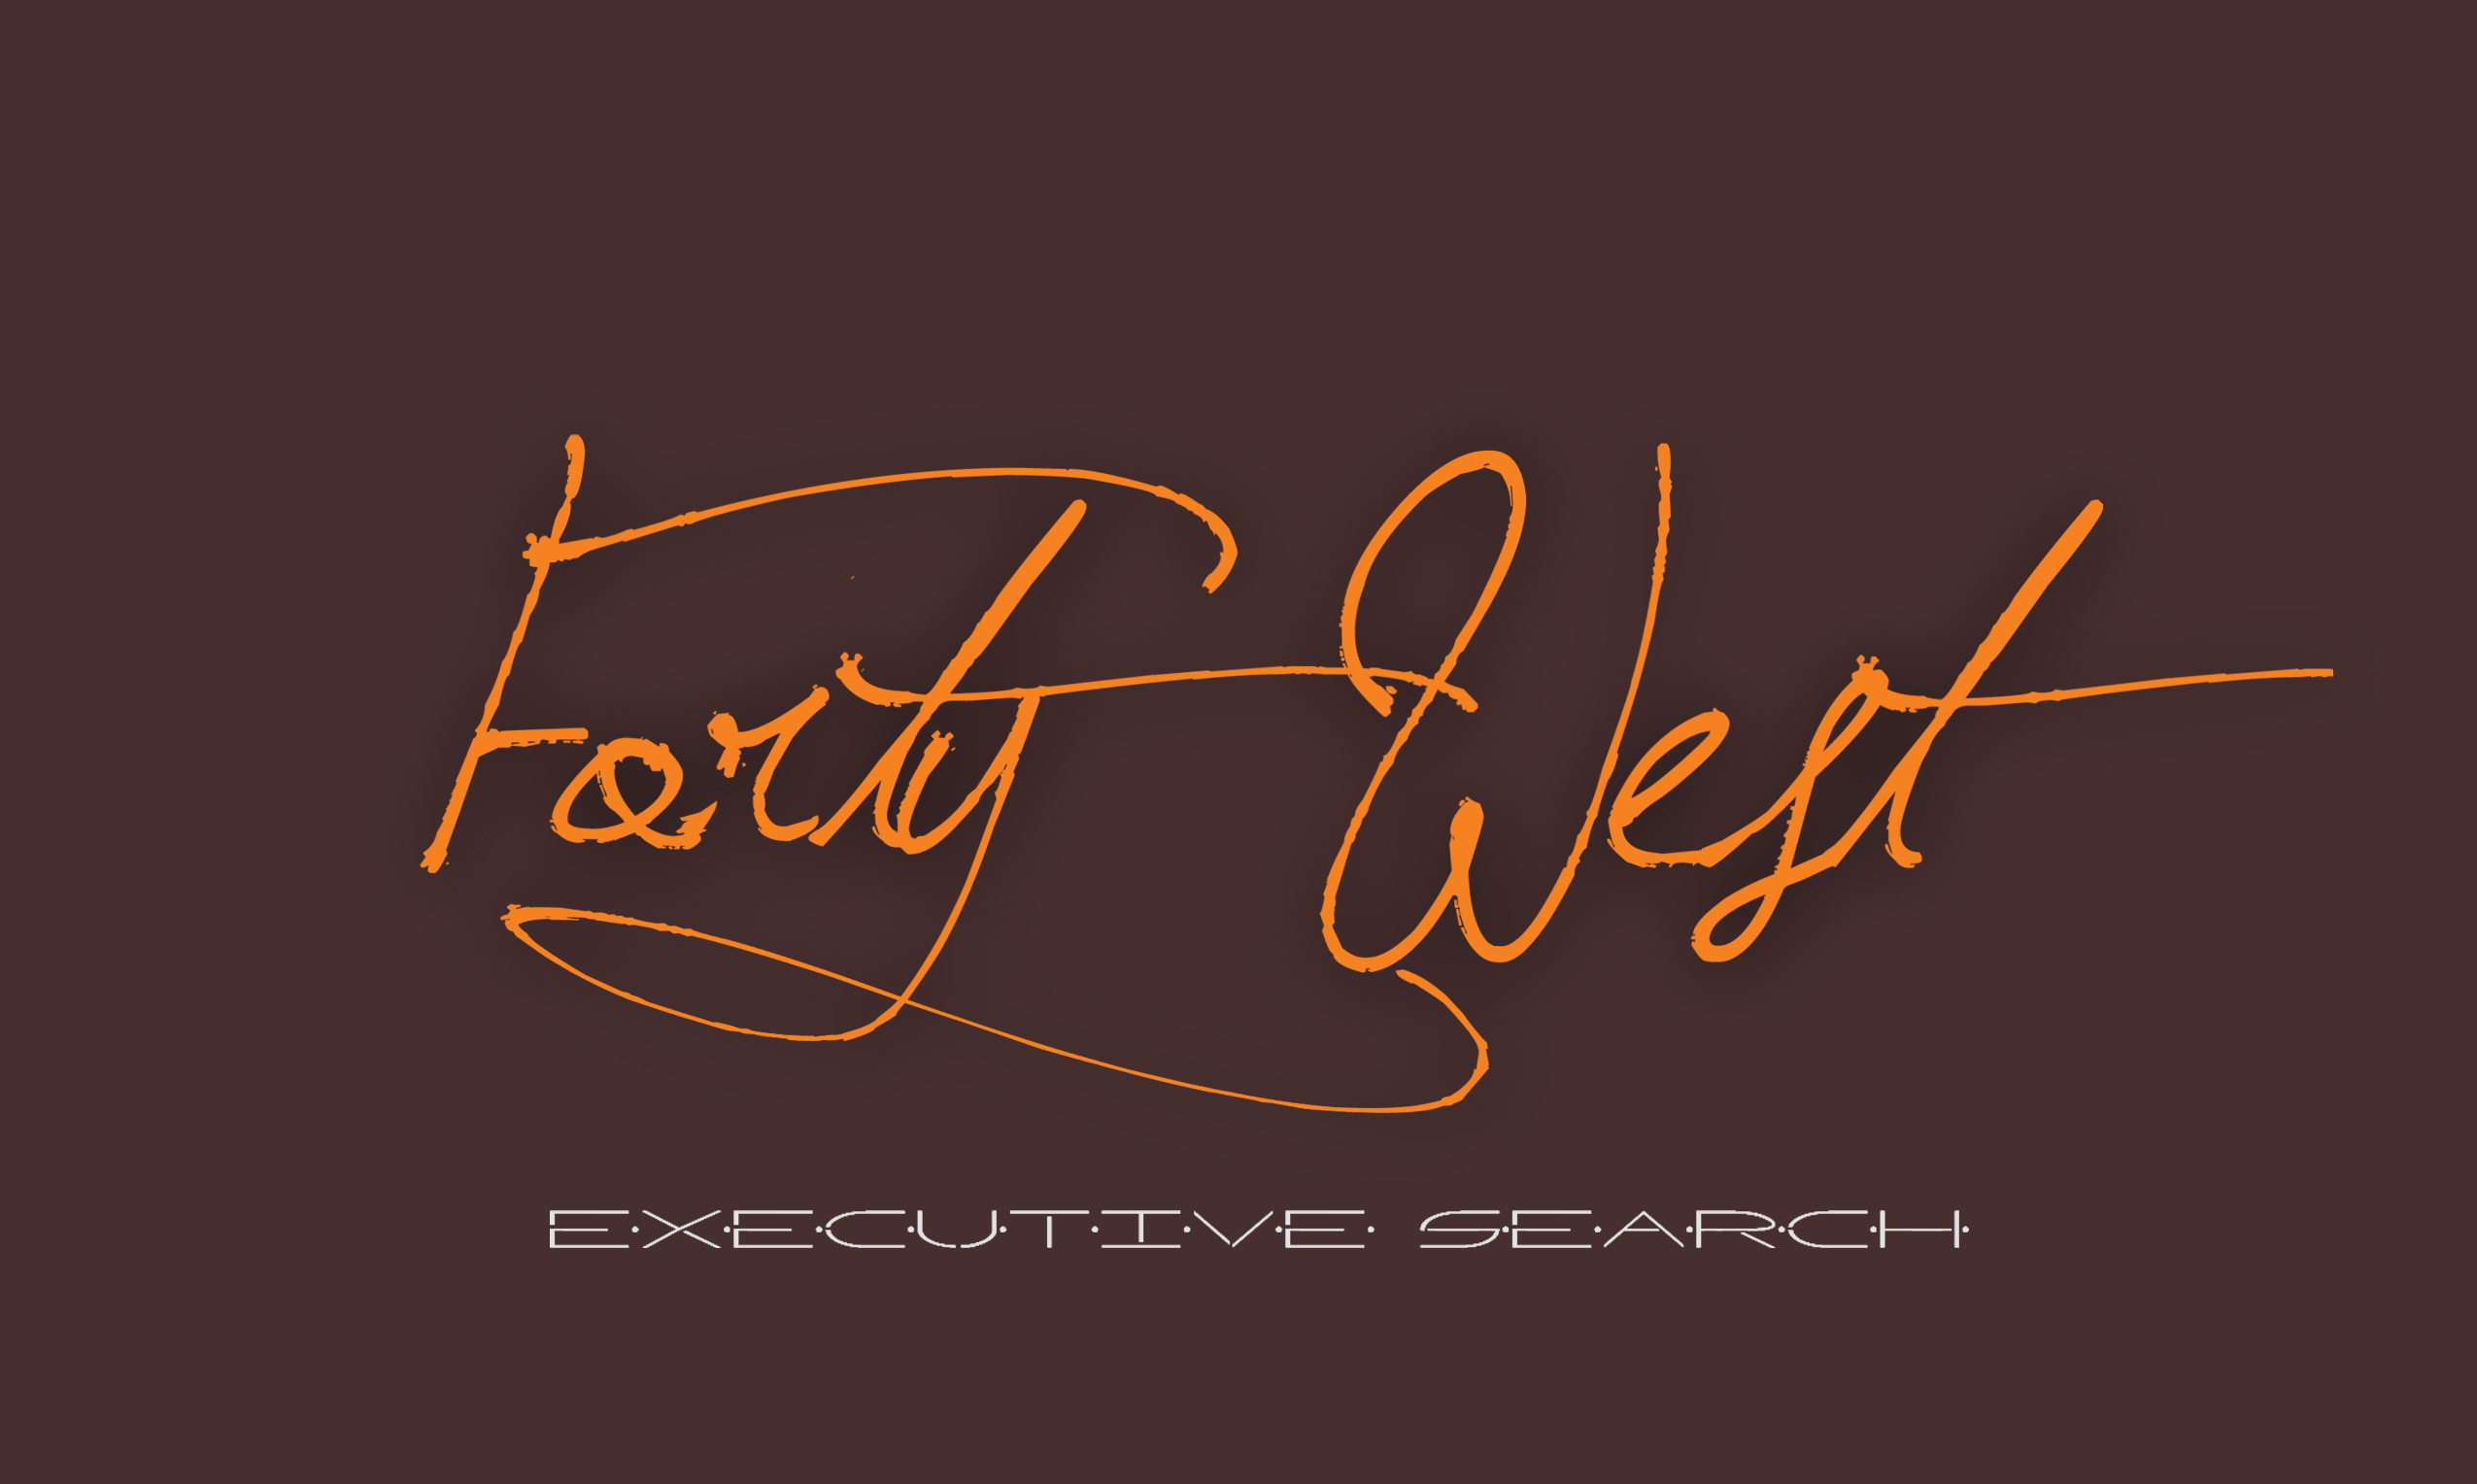 Logo Design by Lama Creative - Entry No. 205 in the Logo Design Contest Unique Logo Design Wanted for Forty West.